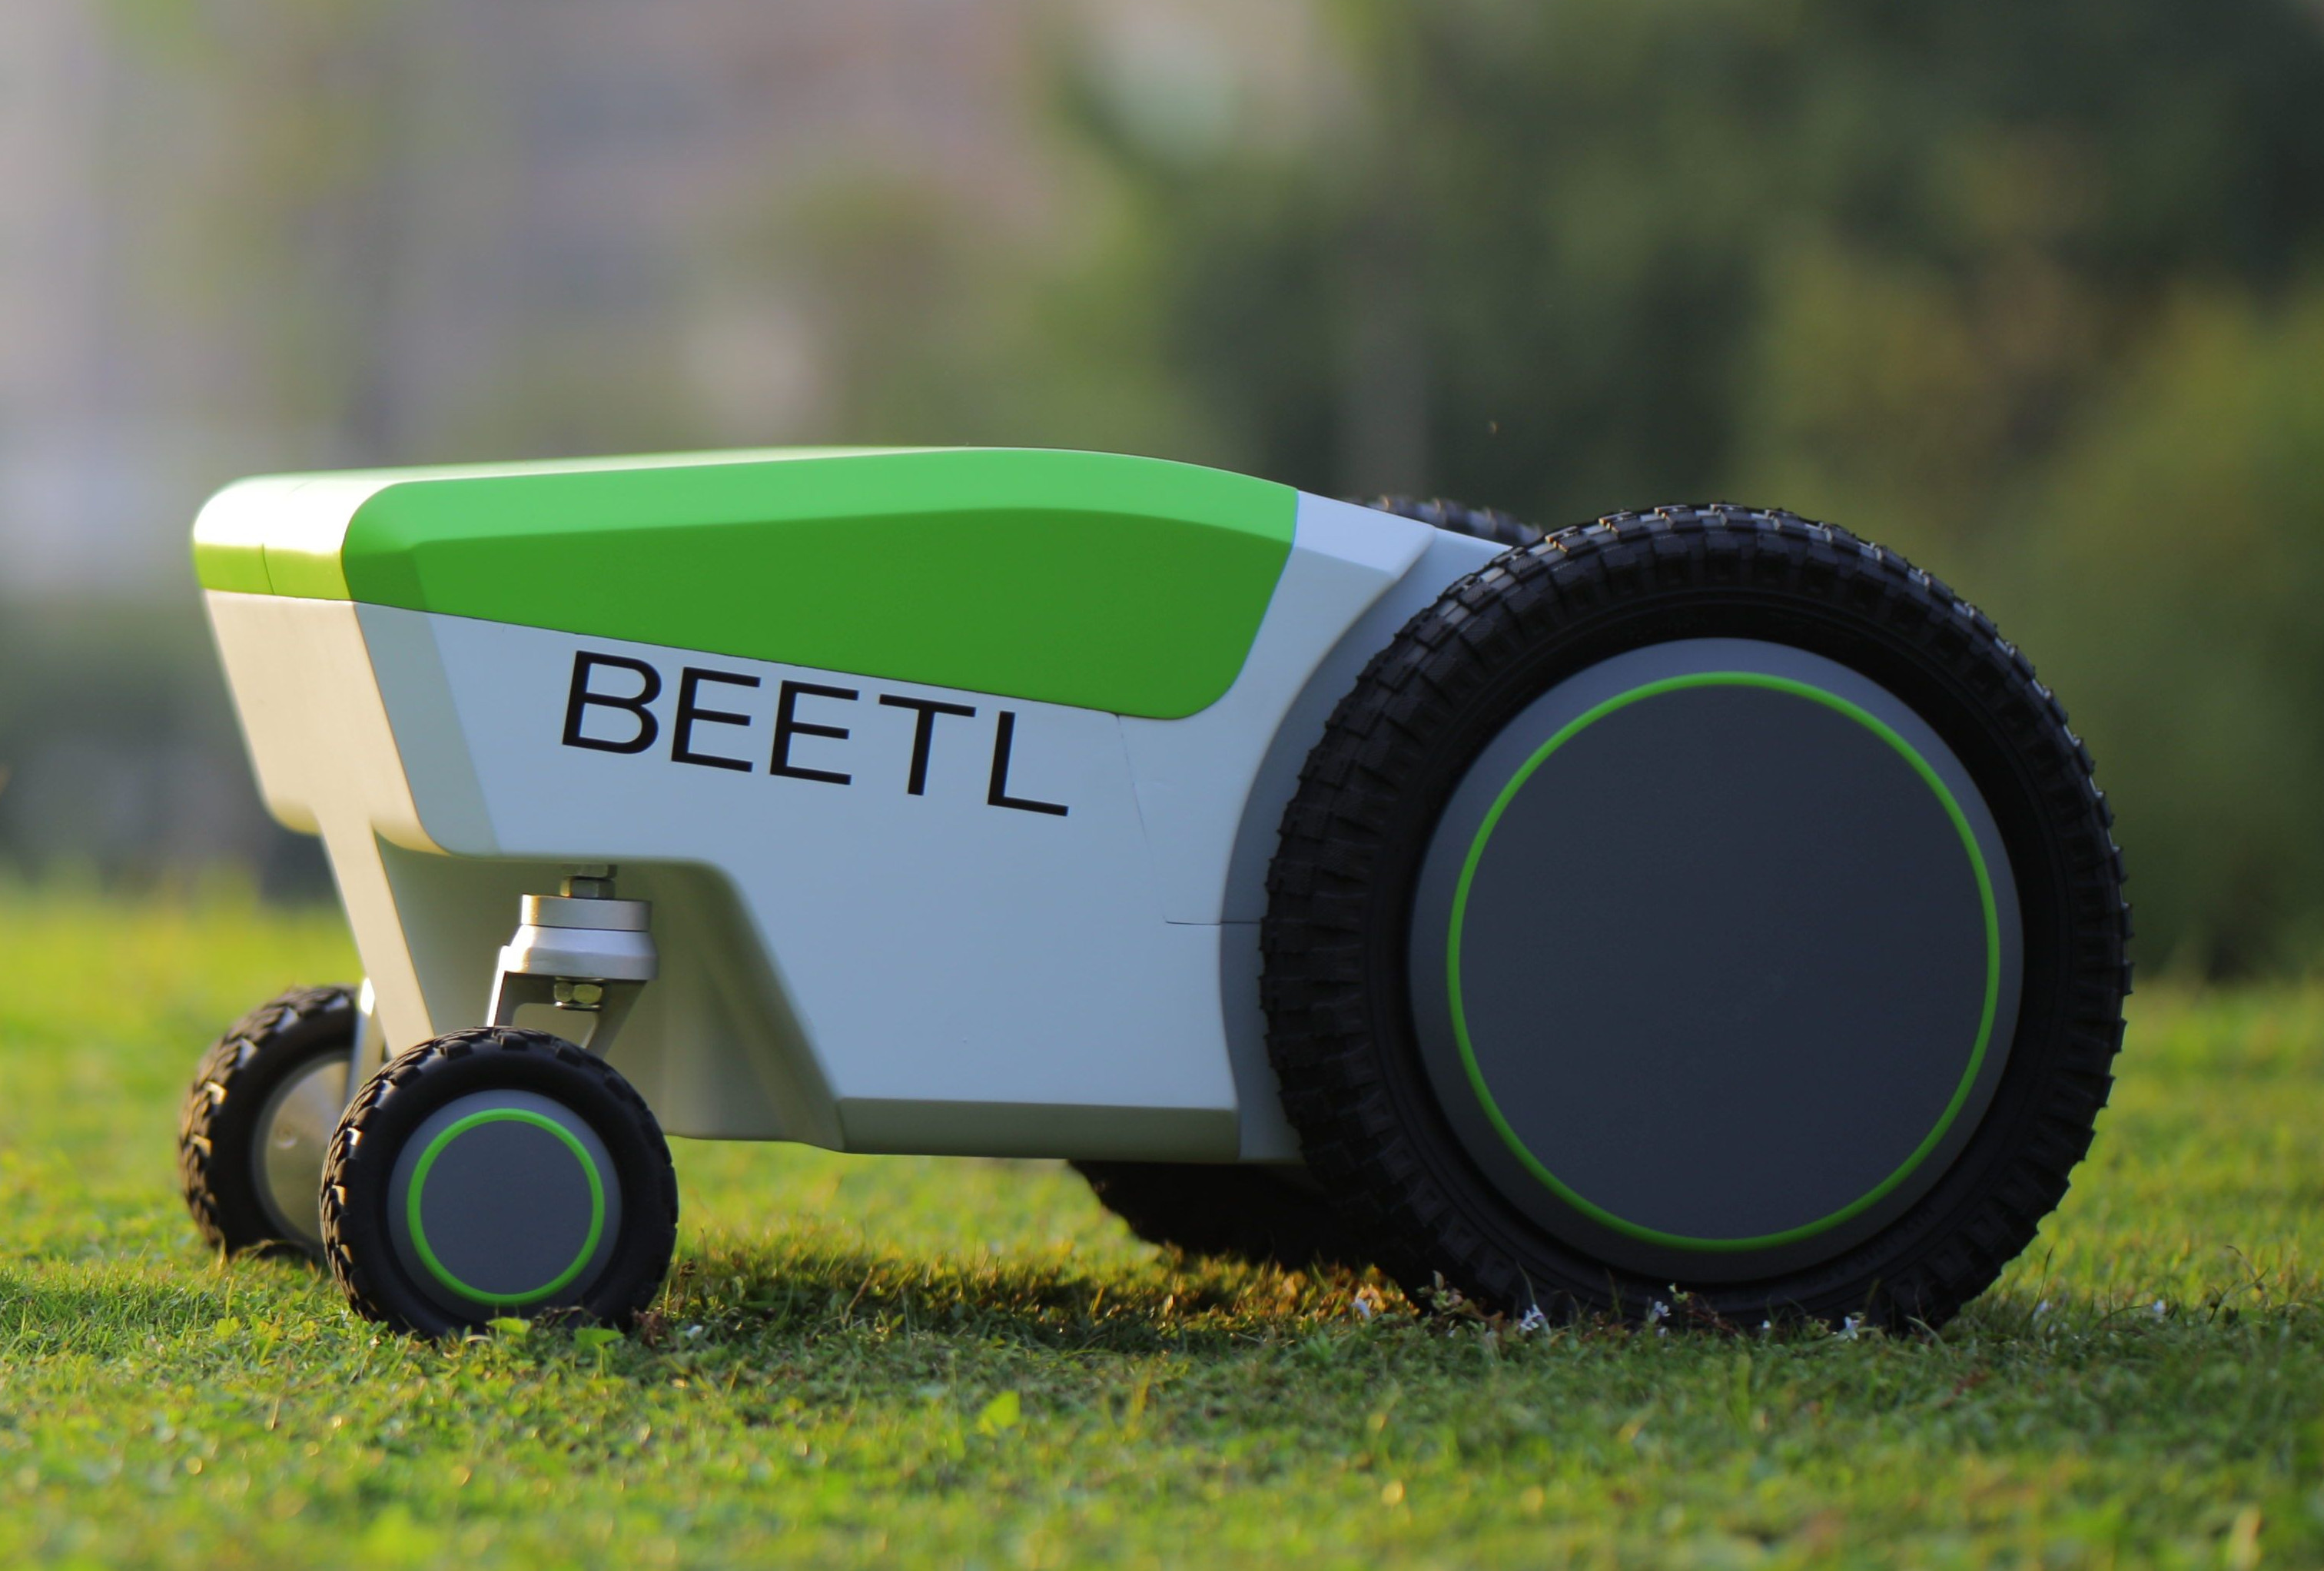 Beetl Autonomous Robot From CES